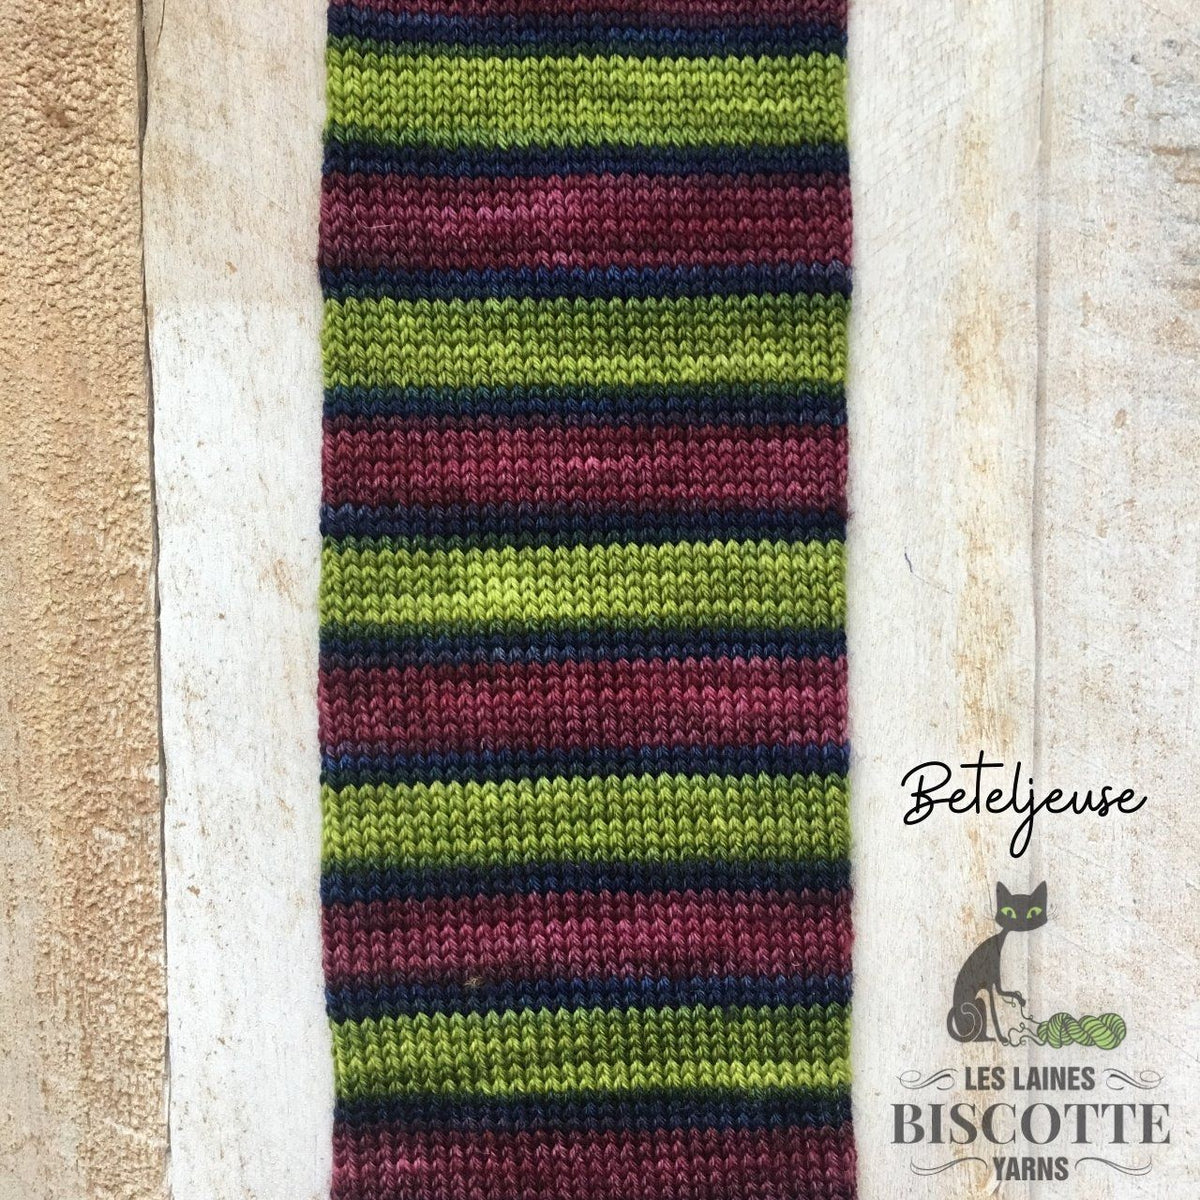 Bis-sock yarn BETELJEUSE self-striping hand-dyed yarn